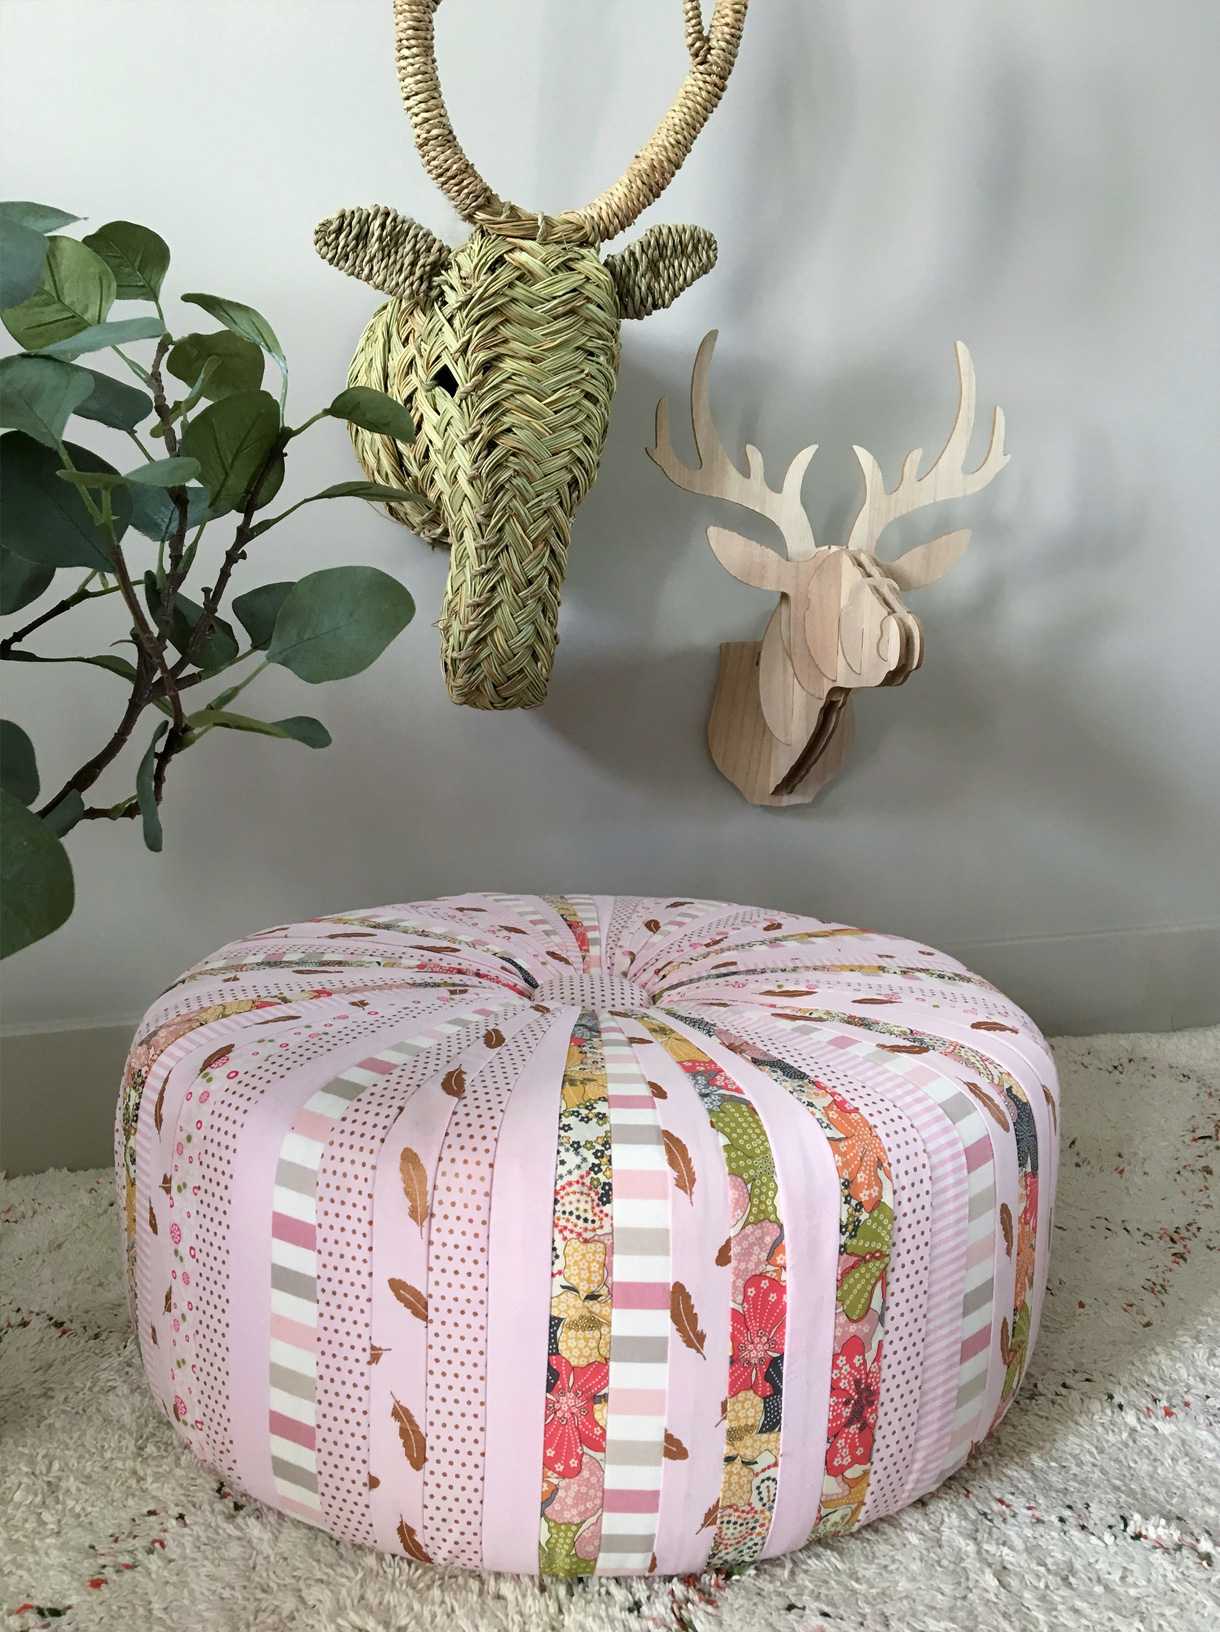 diy nos tuto et cr ations en tissu pouf vide poche maison cr ative. Black Bedroom Furniture Sets. Home Design Ideas